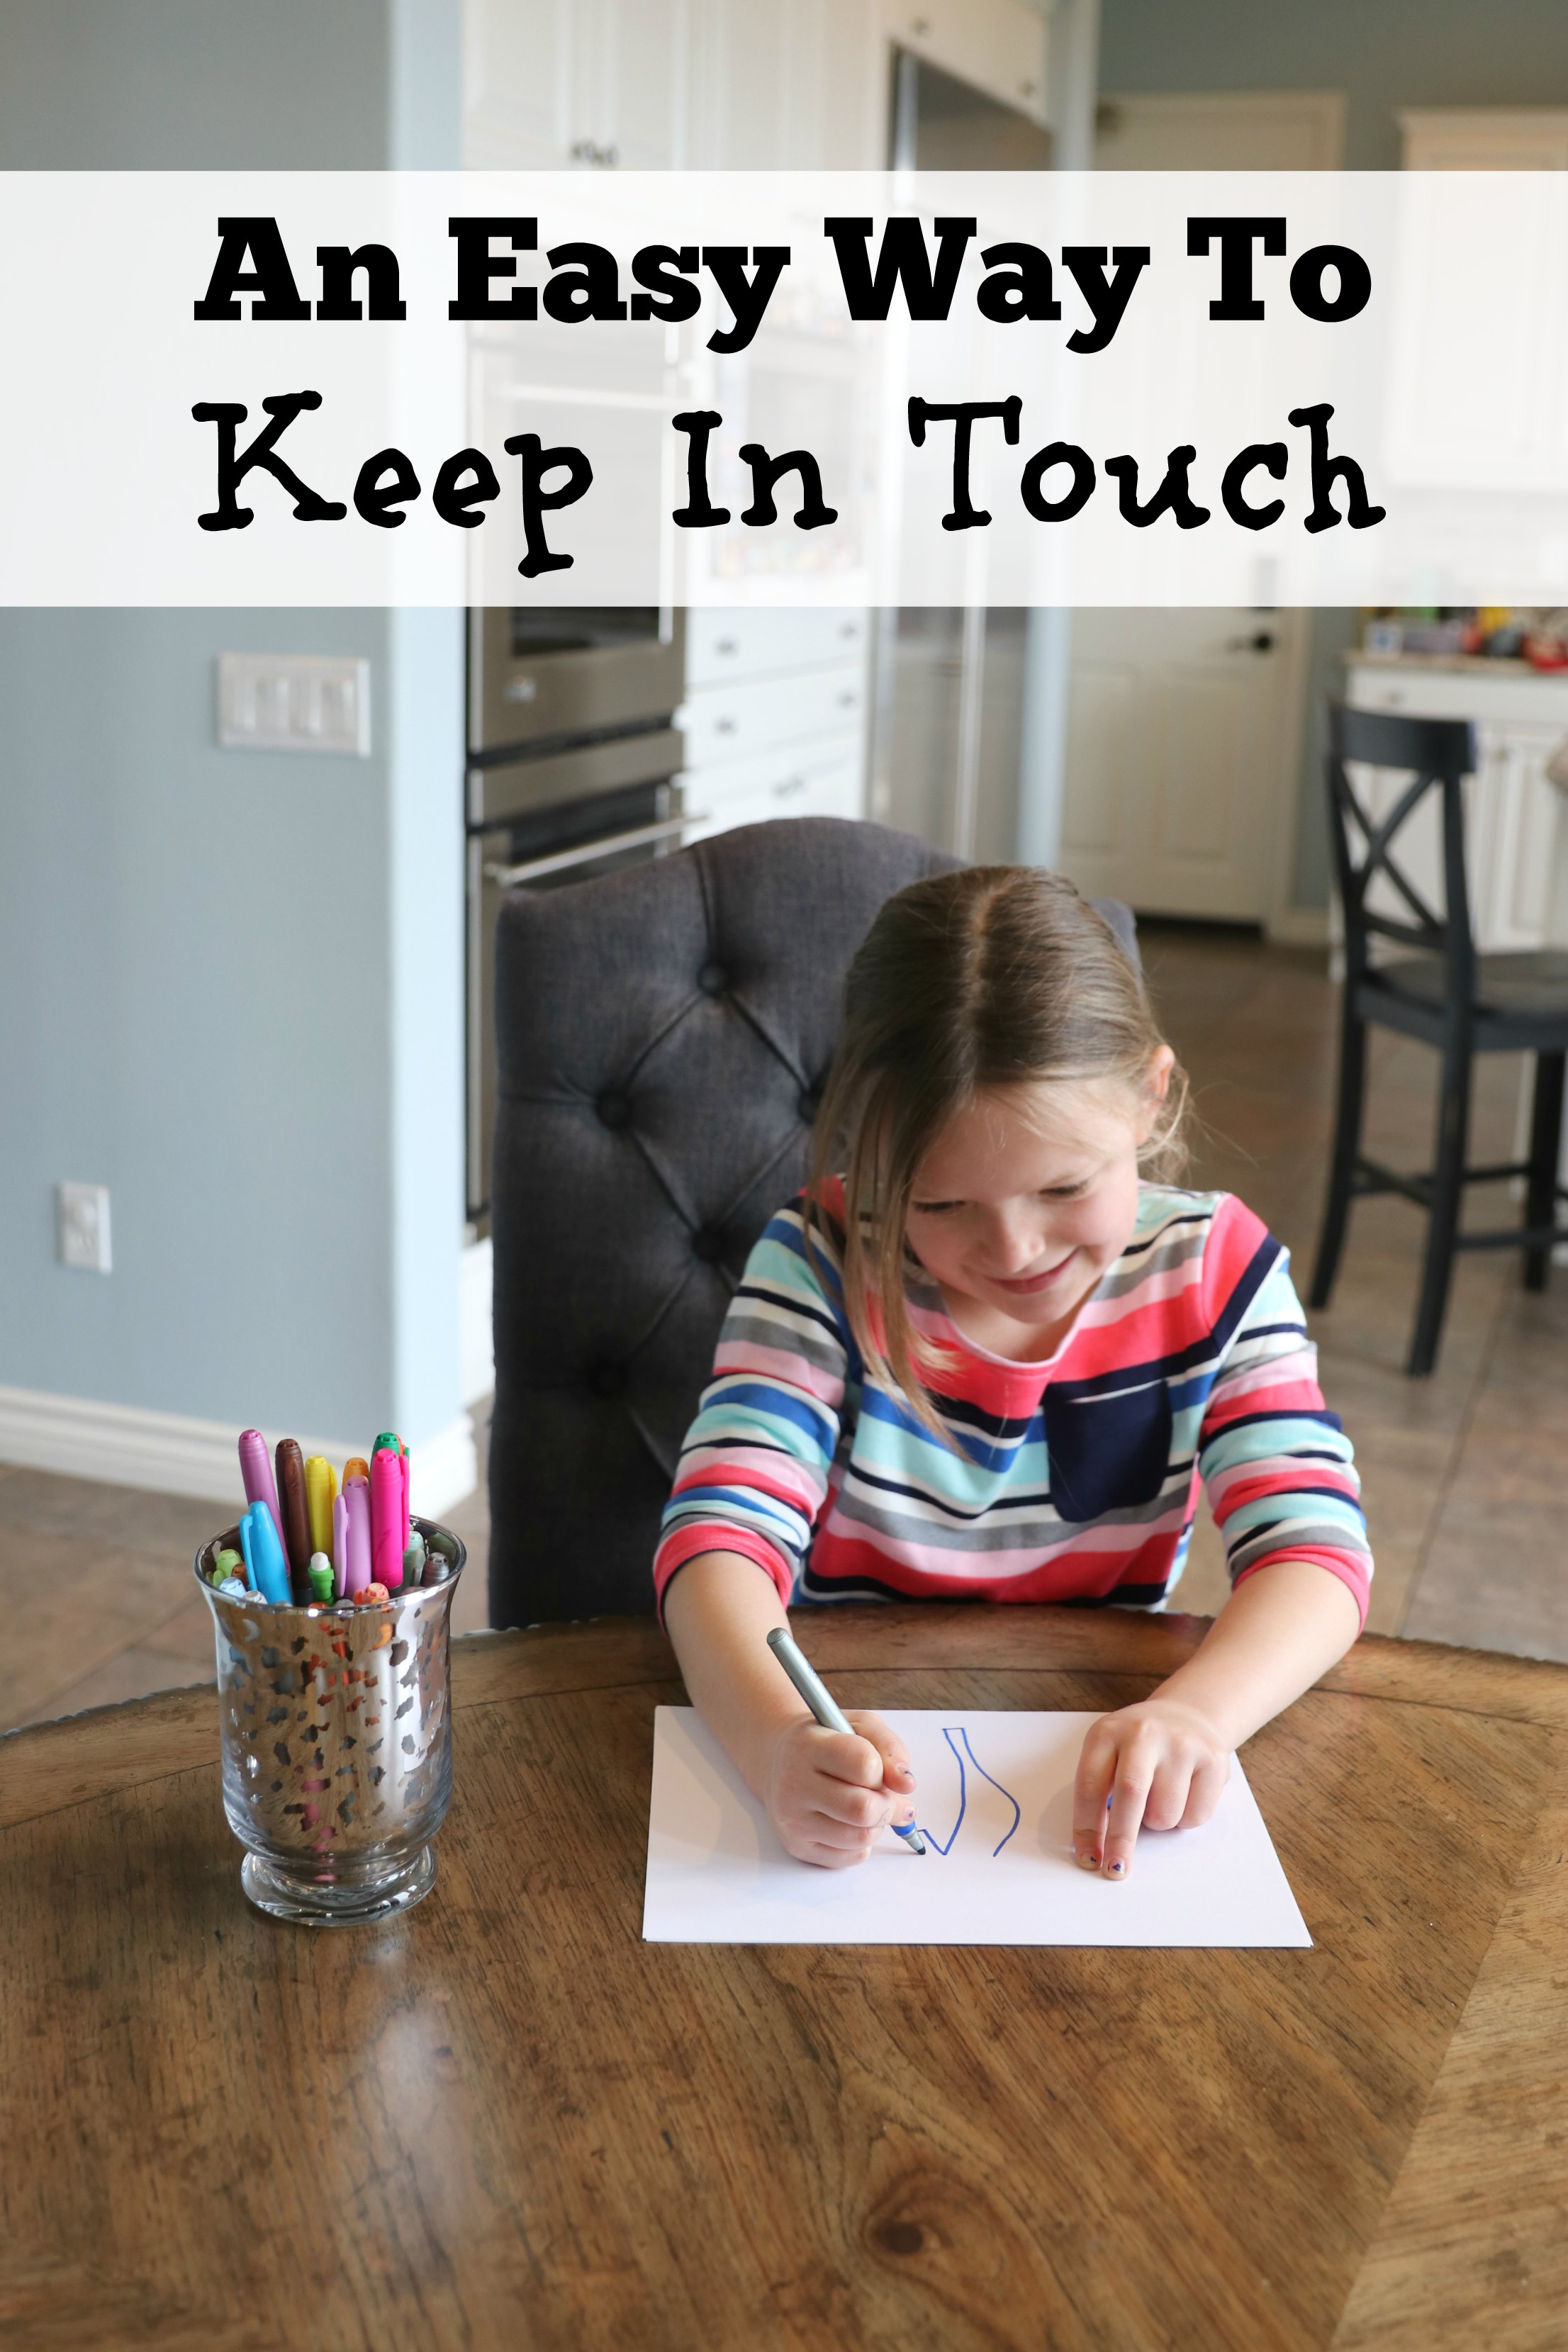 an-easy-way-to-keep-in-touch